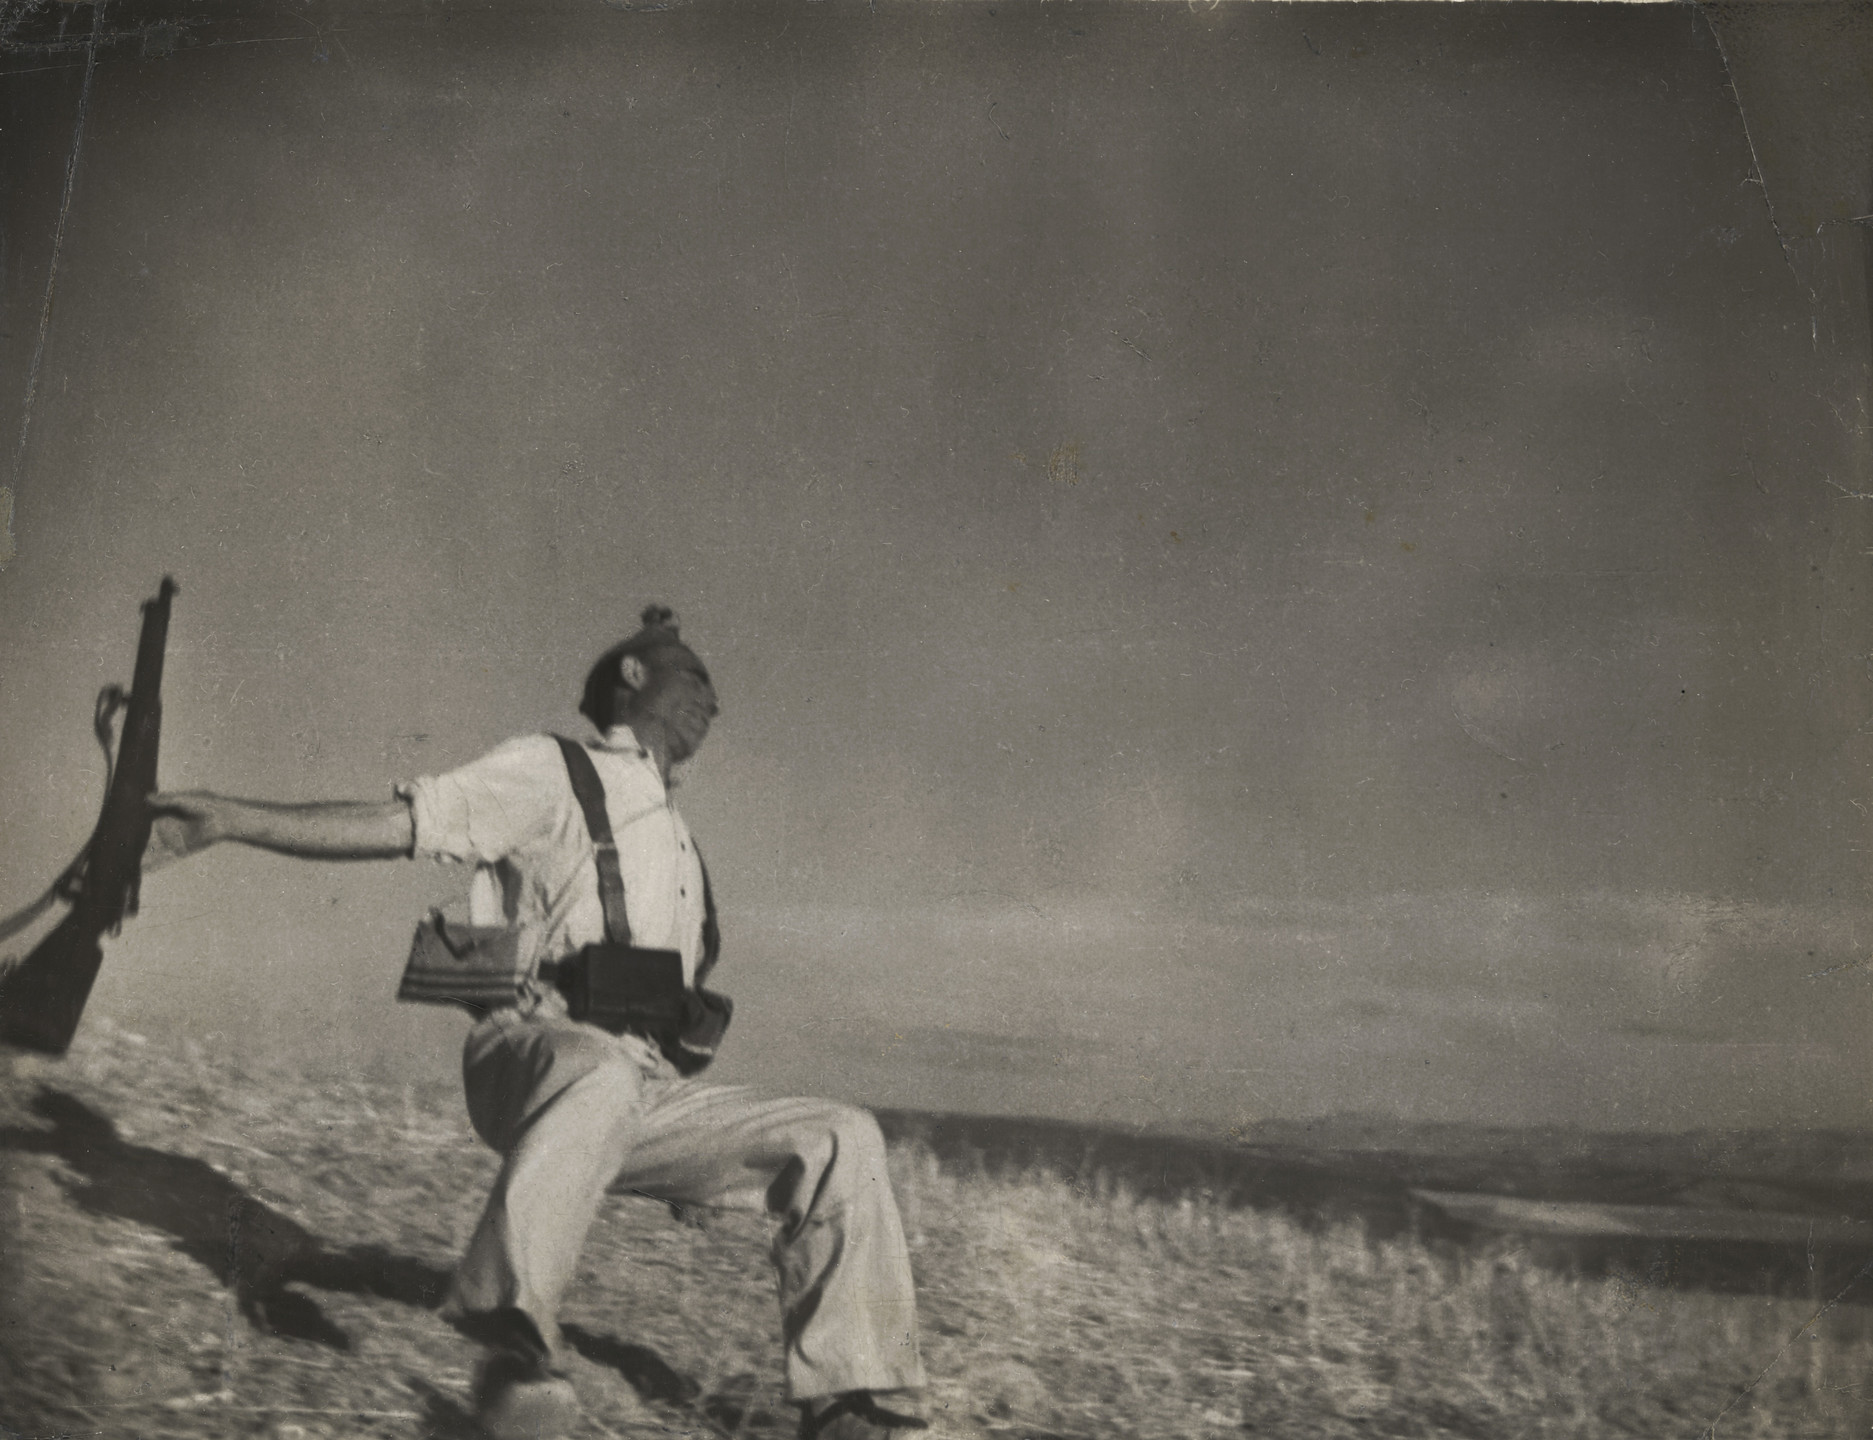 Robert Capa. Death of a Loyalist Militiaman, Córdoba front, Spain. Late August-early September, 1936